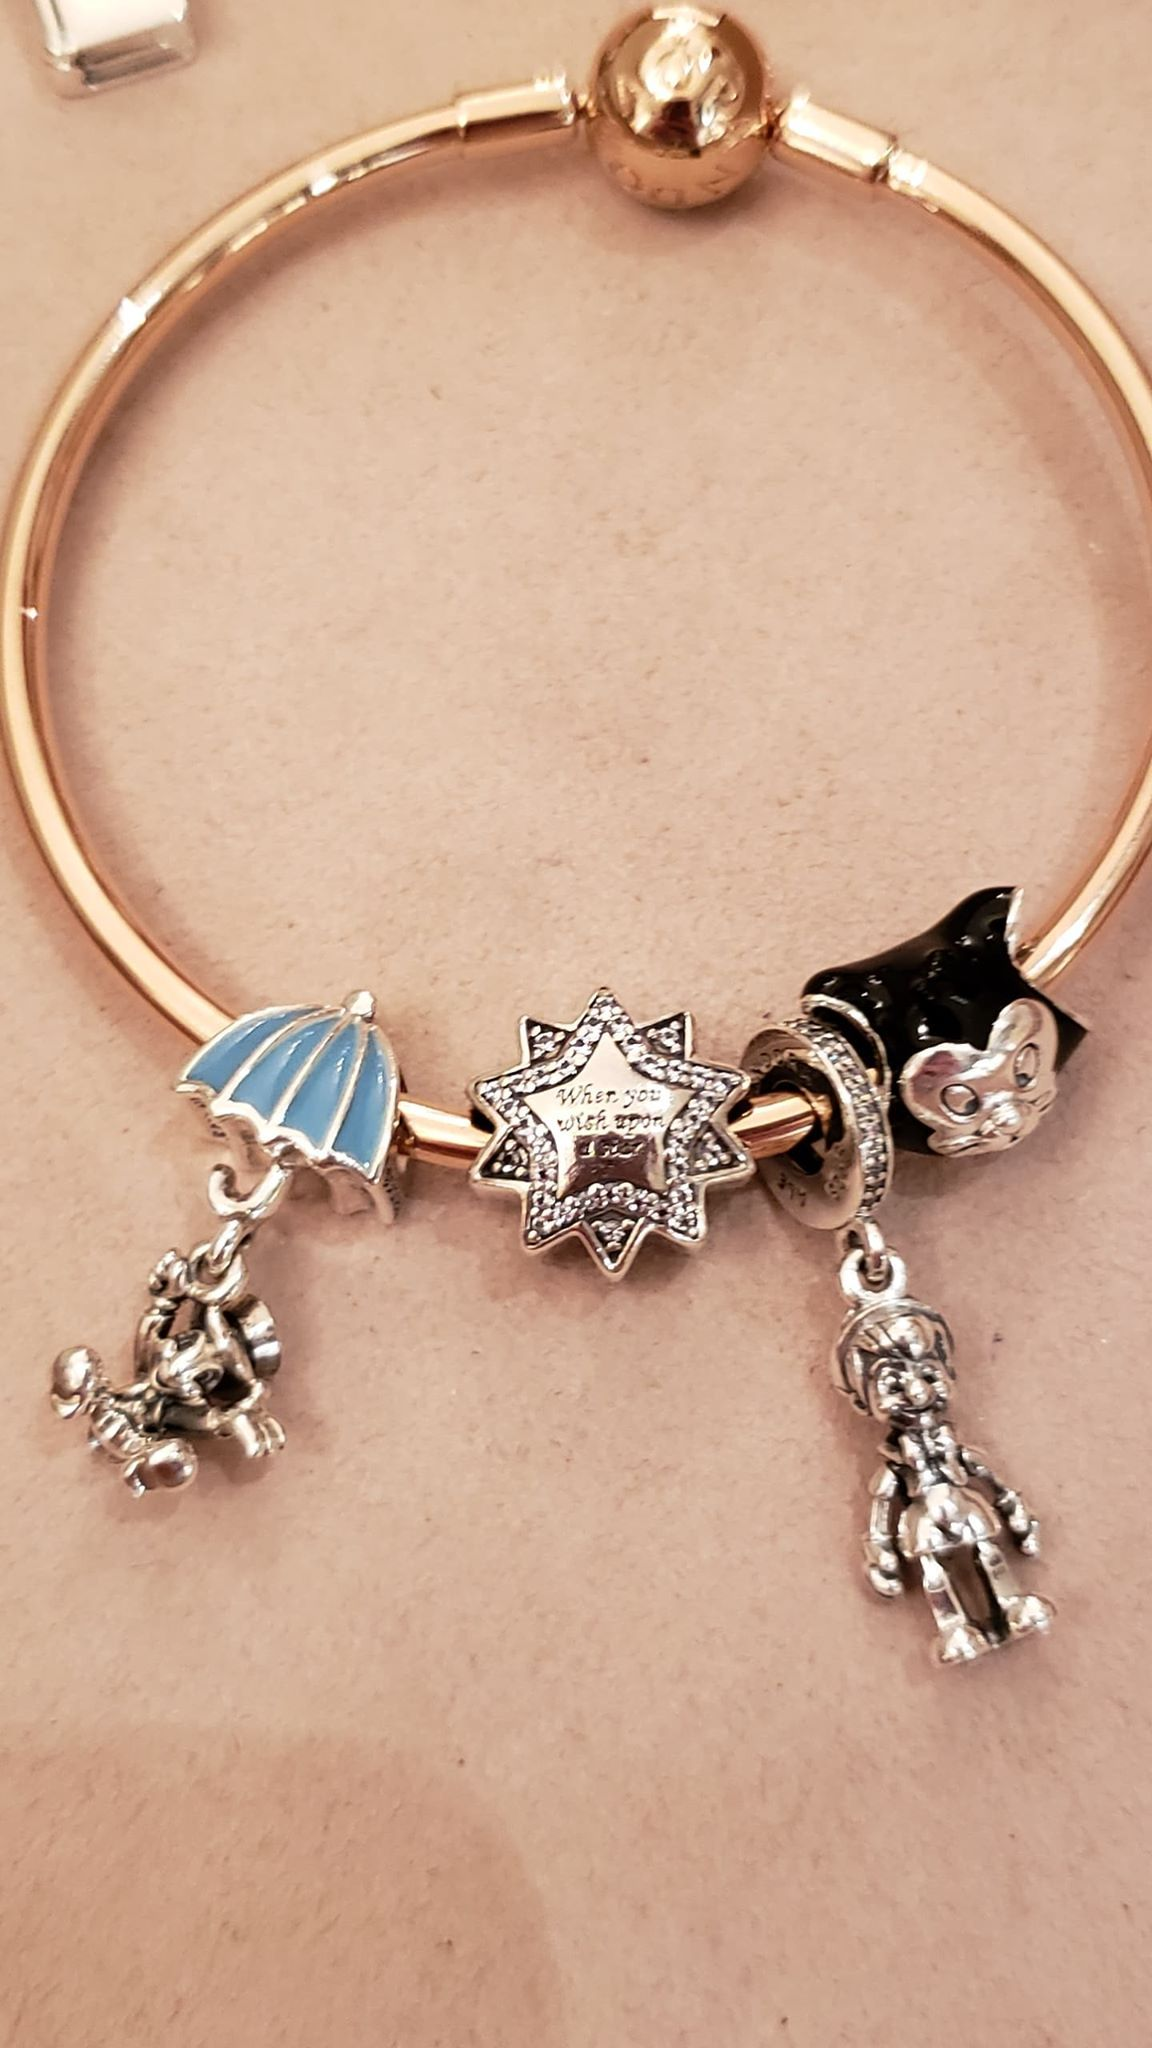 ea74ab565 Disney Parks Pandora Collection Is Now Available Online | Disney ...